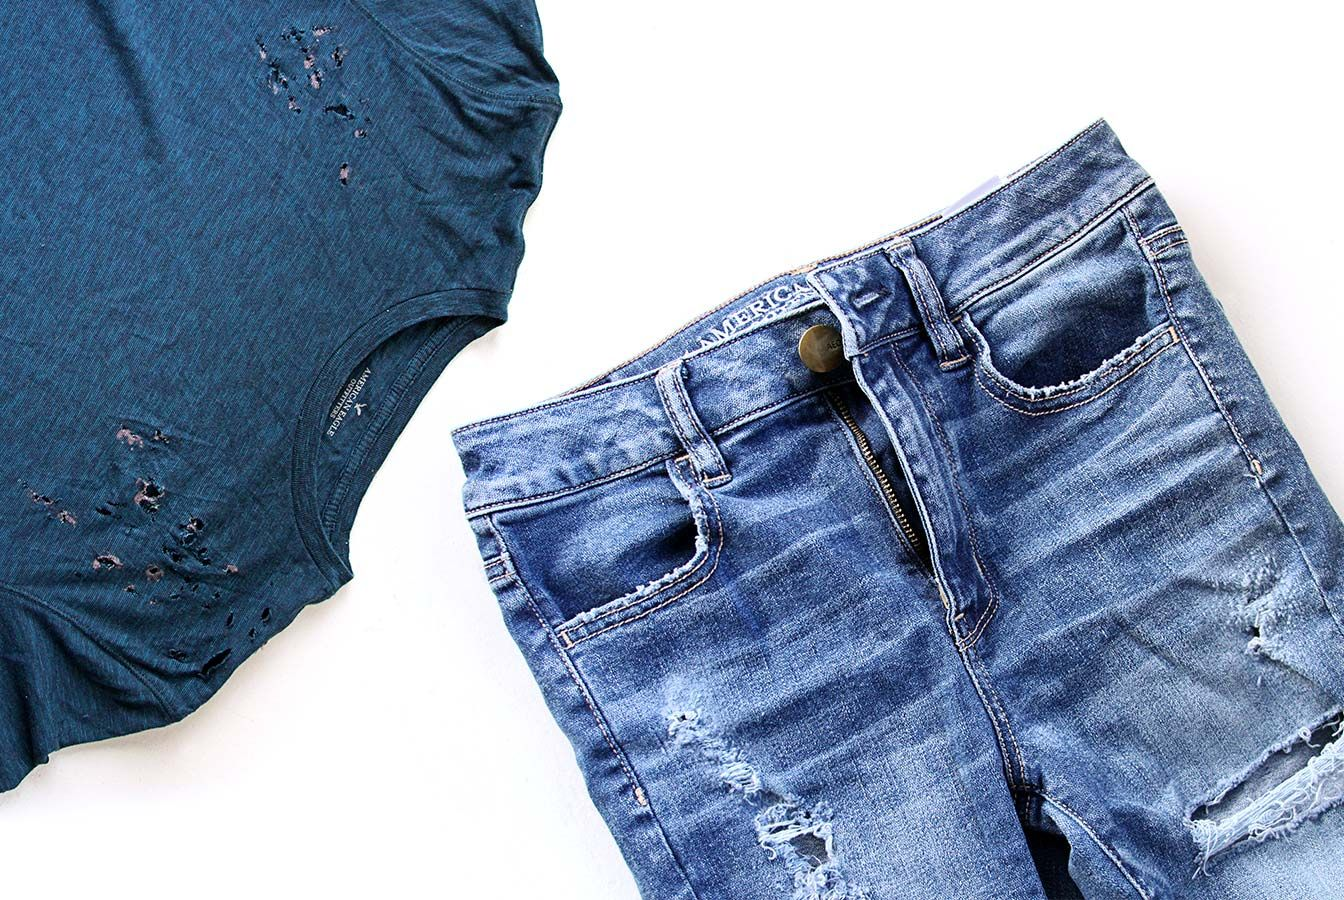 DIY: Distressed Jeans and T-shirts